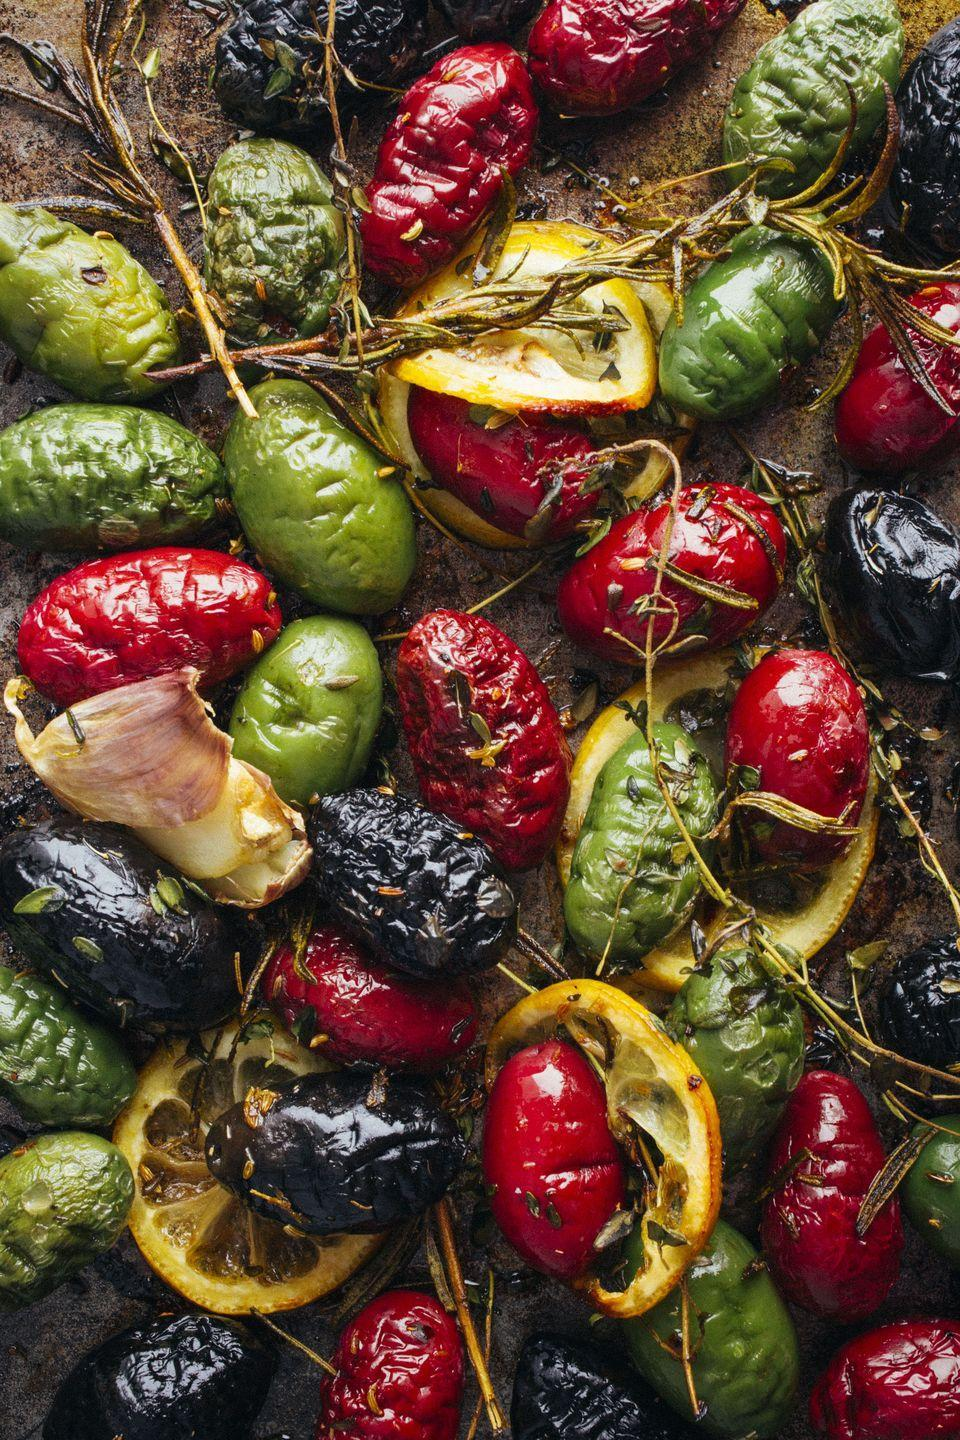 """<p>Team Olive, this one's for you! If you have extras after Game Day (unlikely), you can refrigerate them for up to five days. </p><p><em><a href=""""https://www.goodhousekeeping.com/food-recipes/easy/a46631/roasted-olives-with-lemon-garlic-and-herbs-recipe/"""" rel=""""nofollow noopener"""" target=""""_blank"""" data-ylk=""""slk:Get the recipe for Roasted Olives with Lemon, Garlic and Herbs »"""" class=""""link rapid-noclick-resp"""">Get the recipe for Roasted Olives with Lemon, Garlic and Herbs » </a></em></p>"""